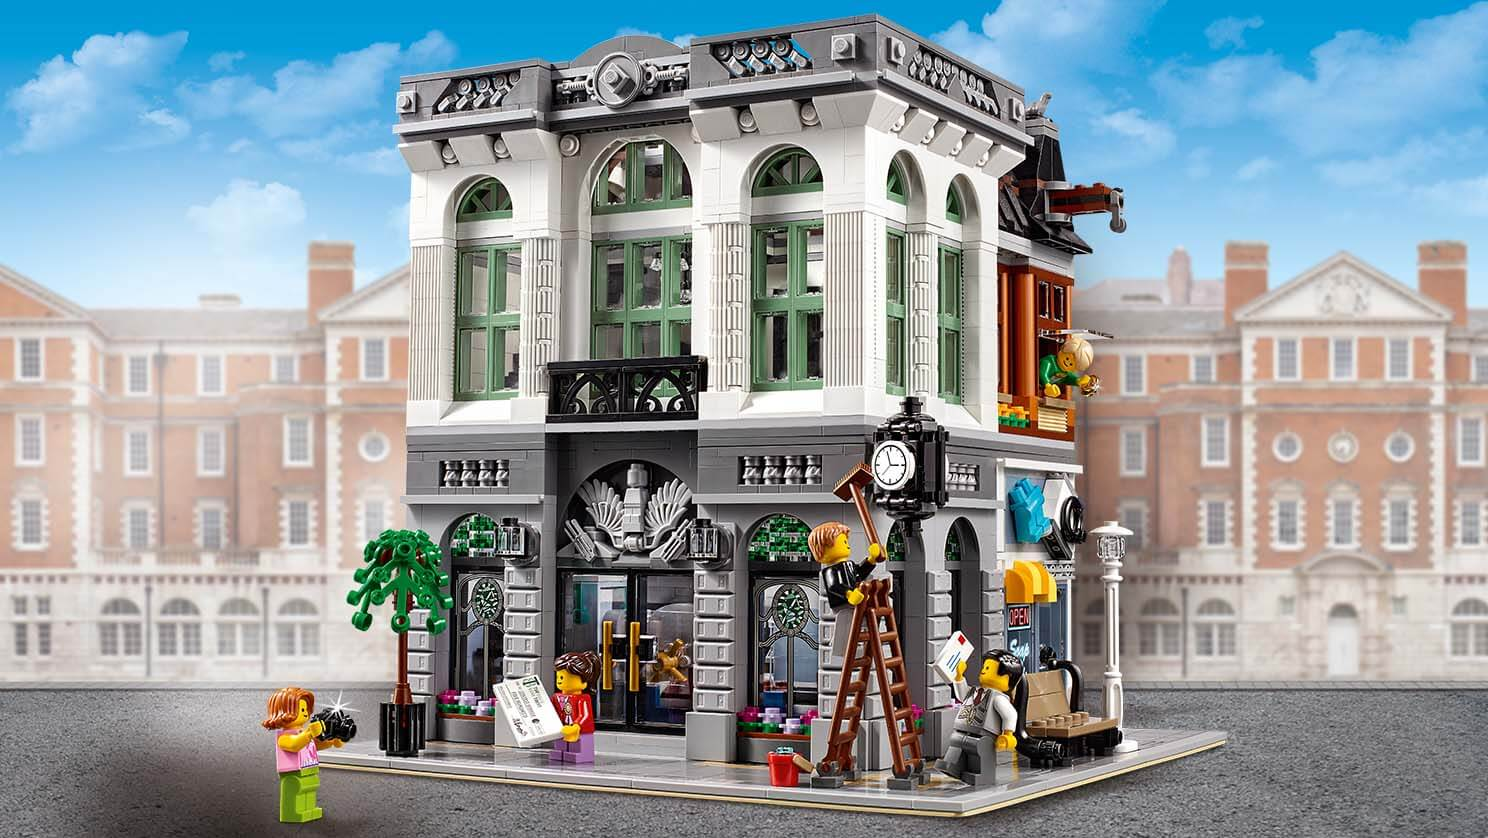 The Lego Modular Buildings Are Some Of My Favourite Sets If Youre Not Aware Of Them This Creator Series Has Been Around Since 2007 And Are A Series Of